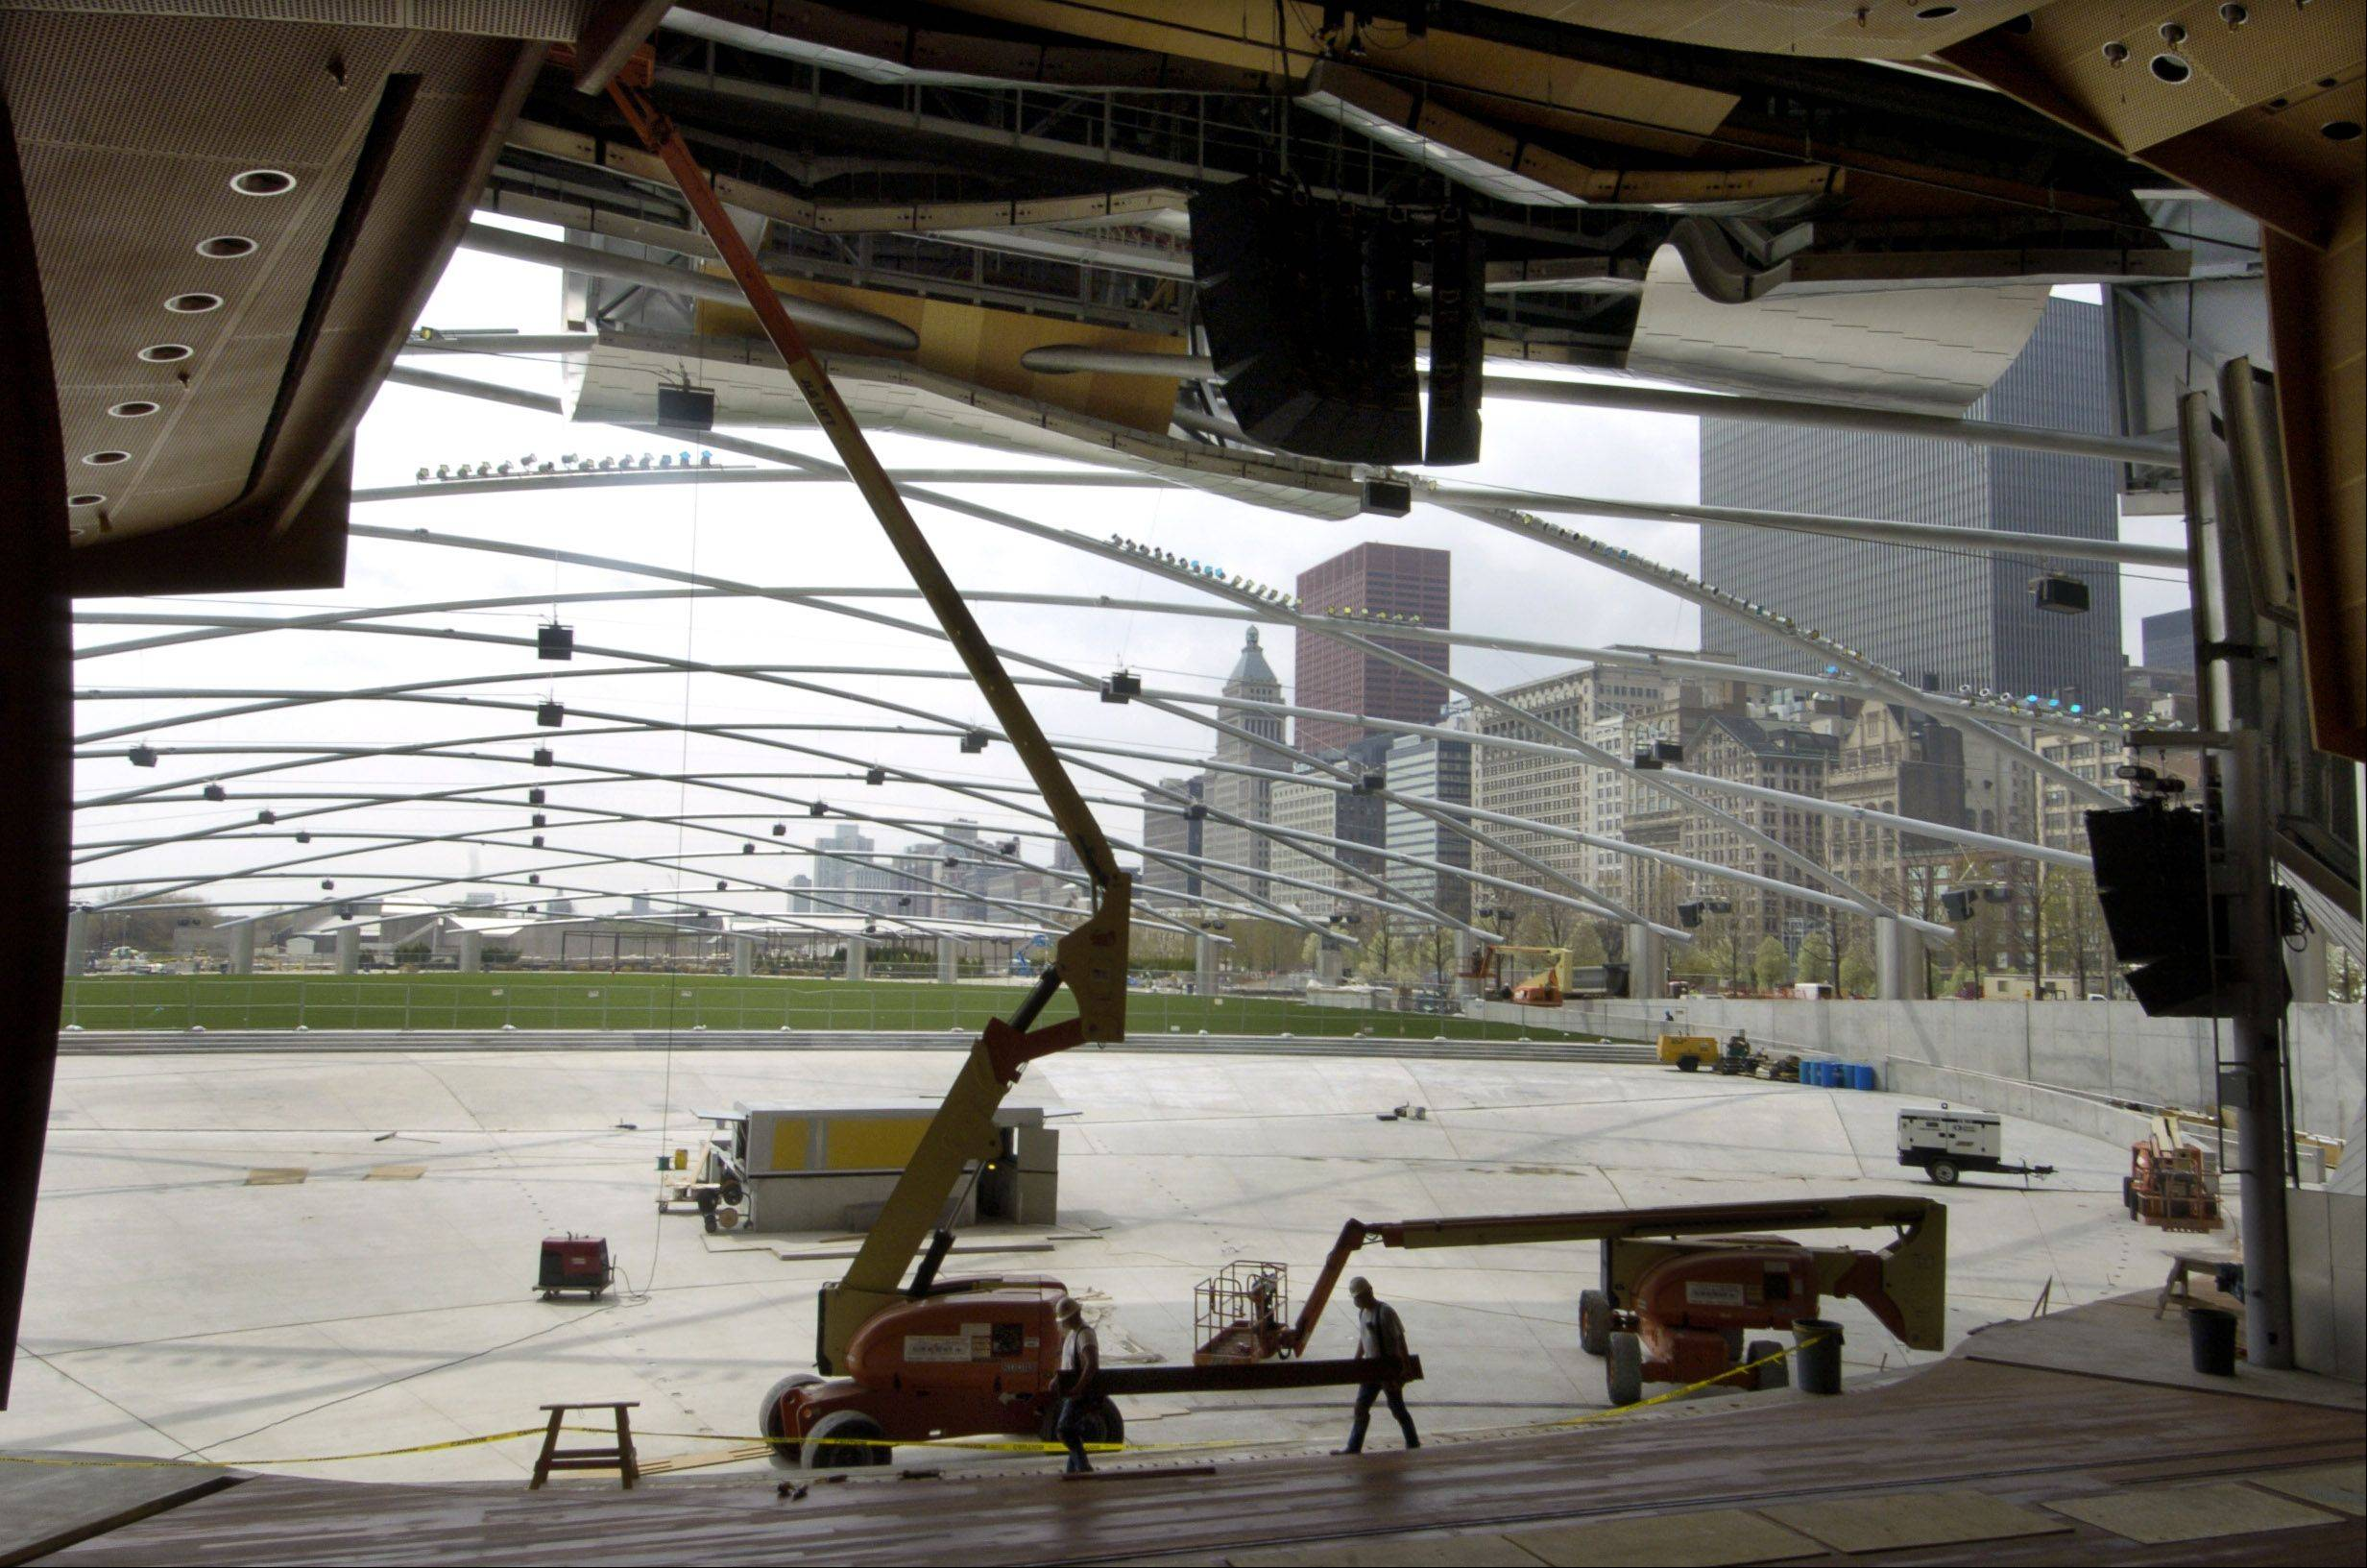 Pritzker pavilion at Millenium Park will have a screen that will function like a big TV and connect the pavilion with free culture, sports and entertainment from around the world.